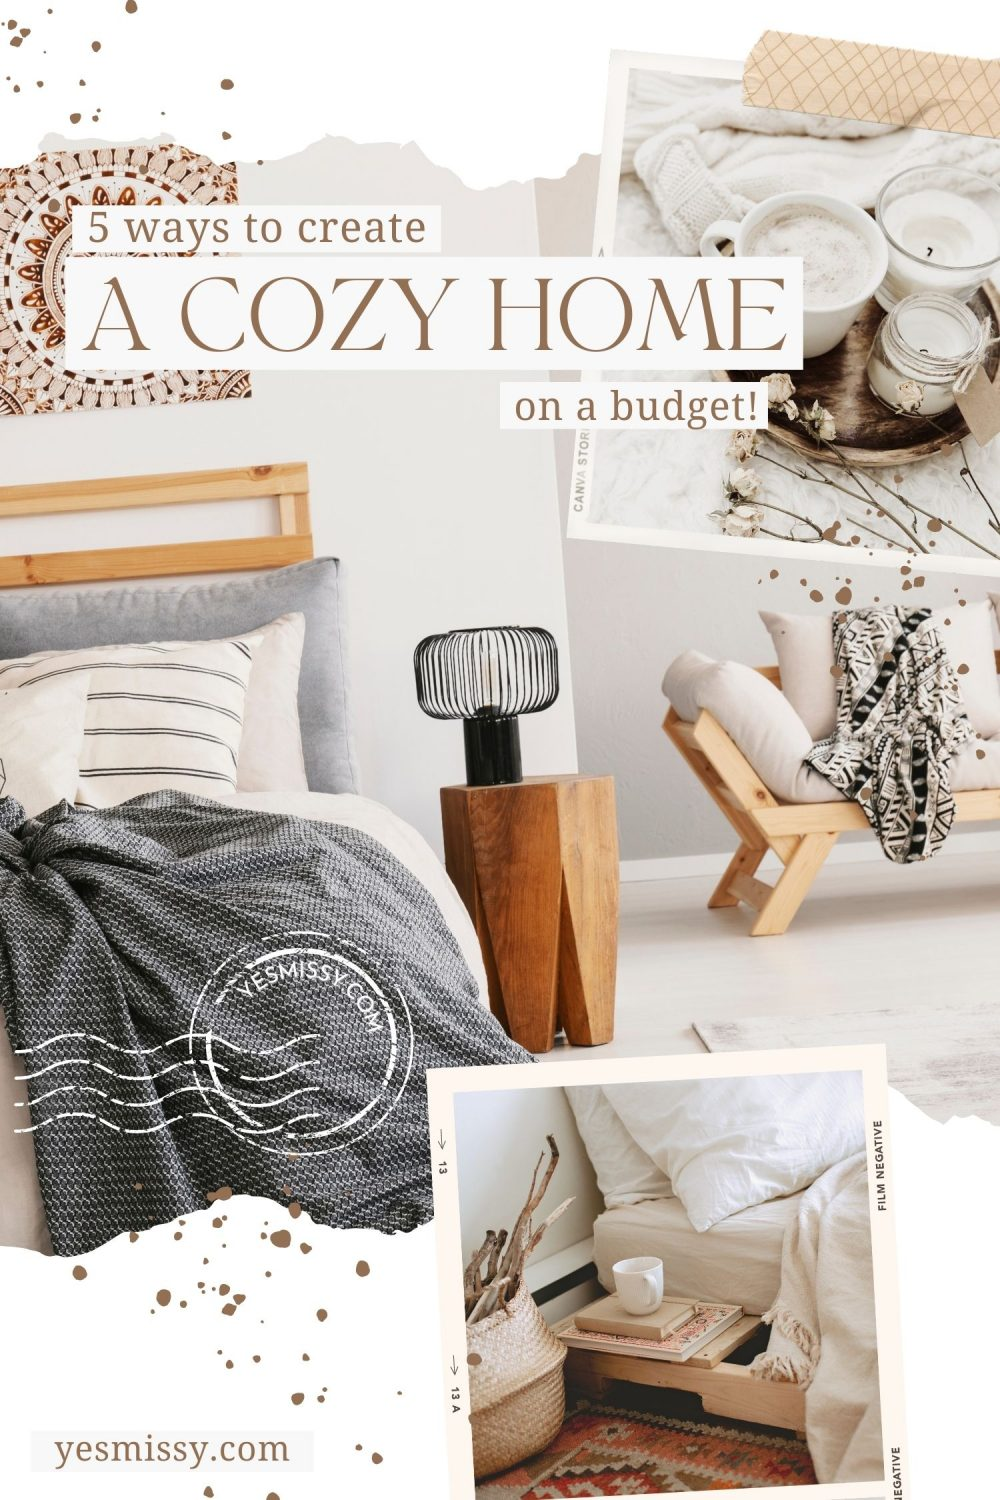 Home decor tips for fall and winter to make your home more cozy. Visit my lifestyle blog yesmissy.com for more home decor ideas, easy home hacks and DIY ideas to decorate your home.